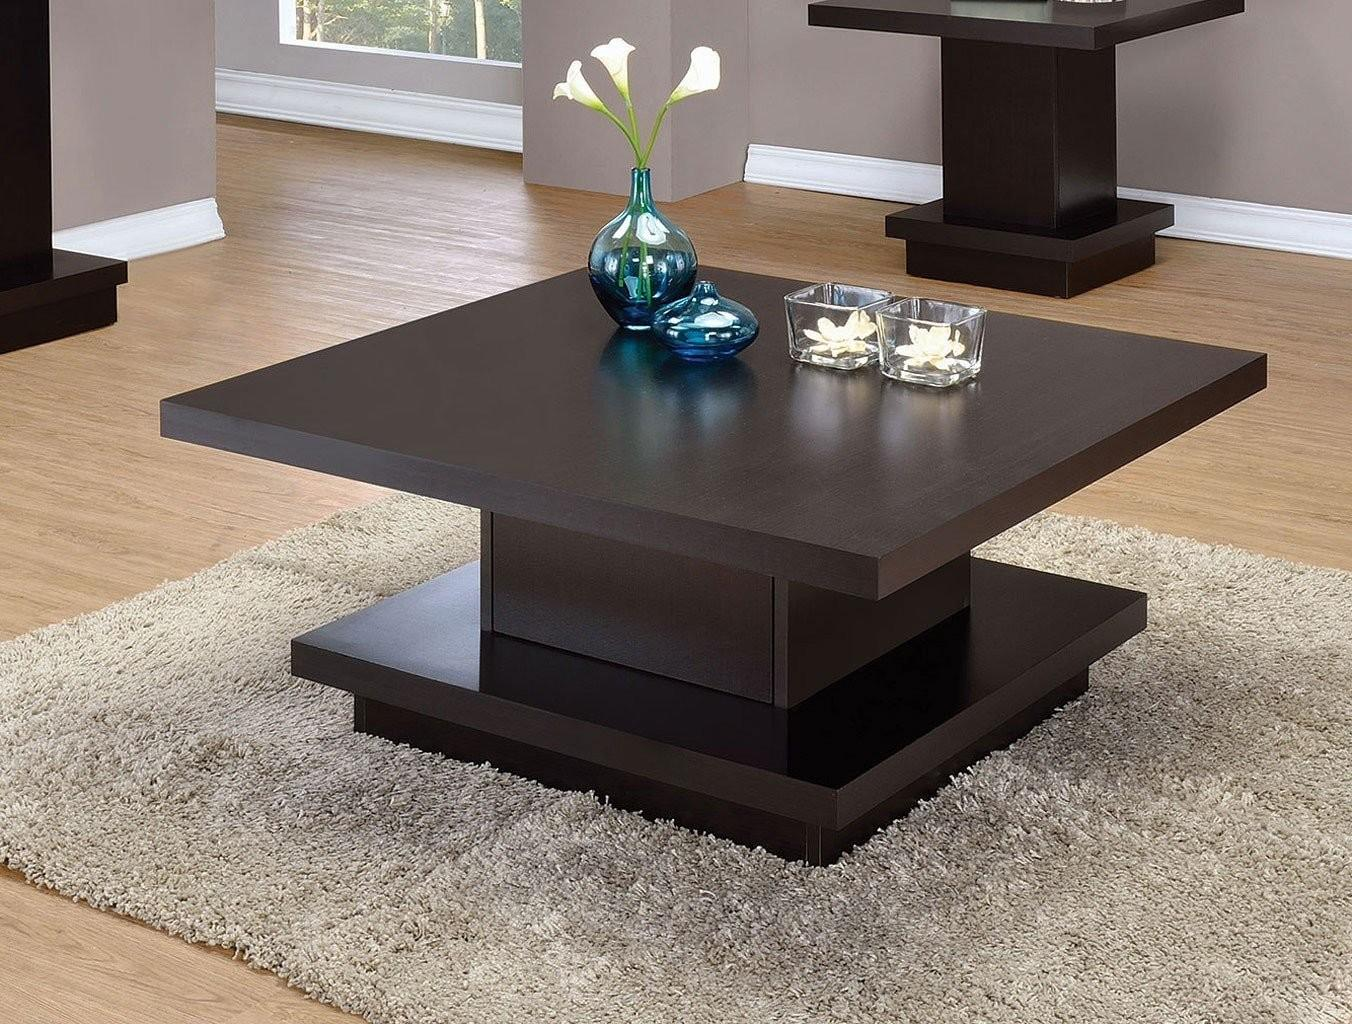 Pedestal Style Coffee Table Cocktail Tables